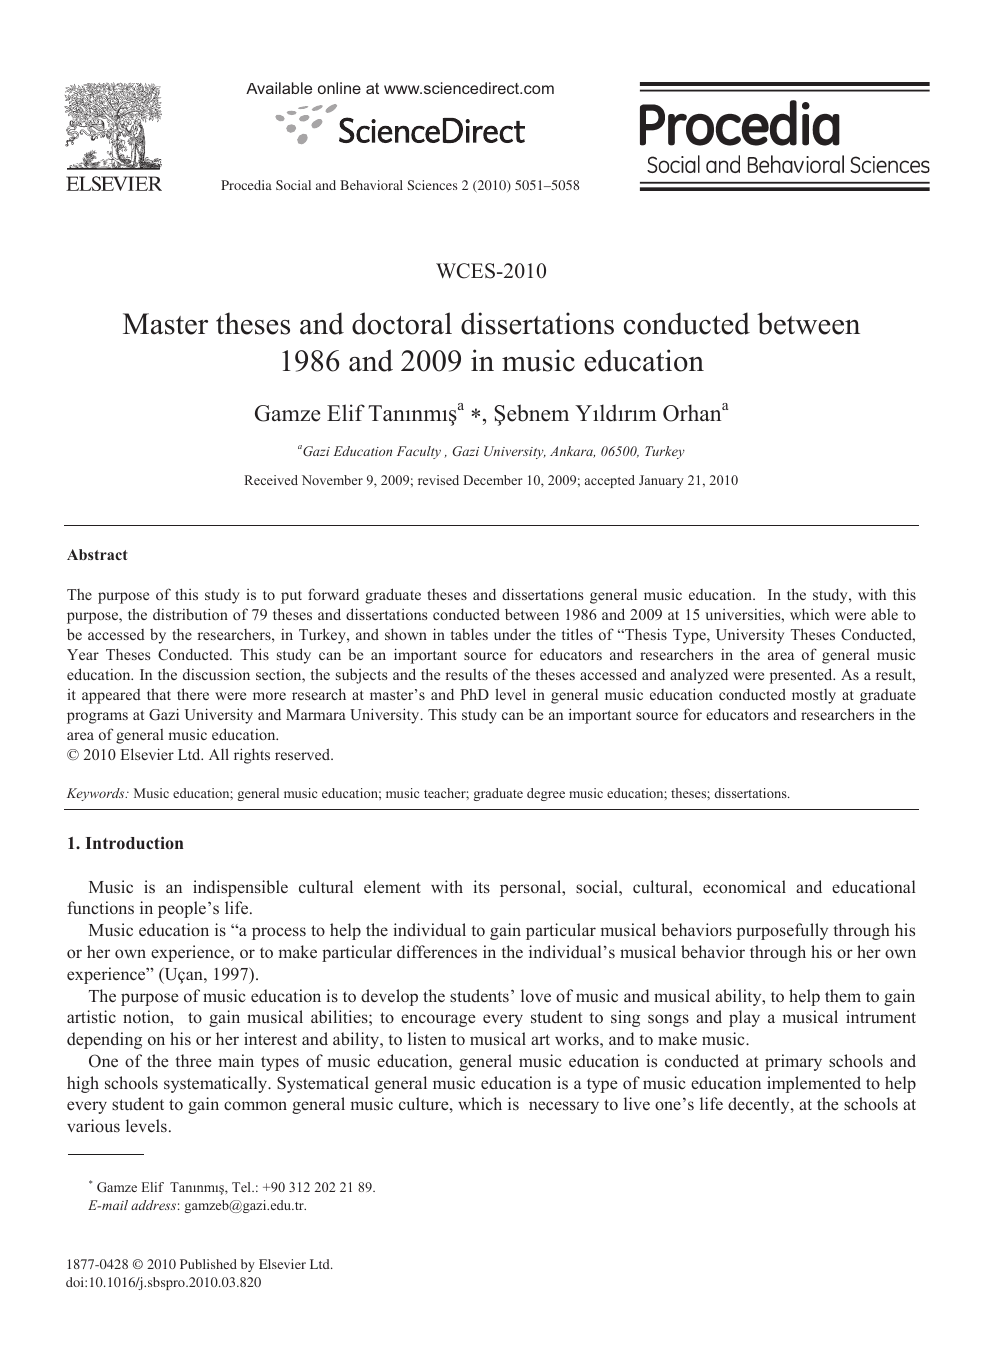 dissertations in music education